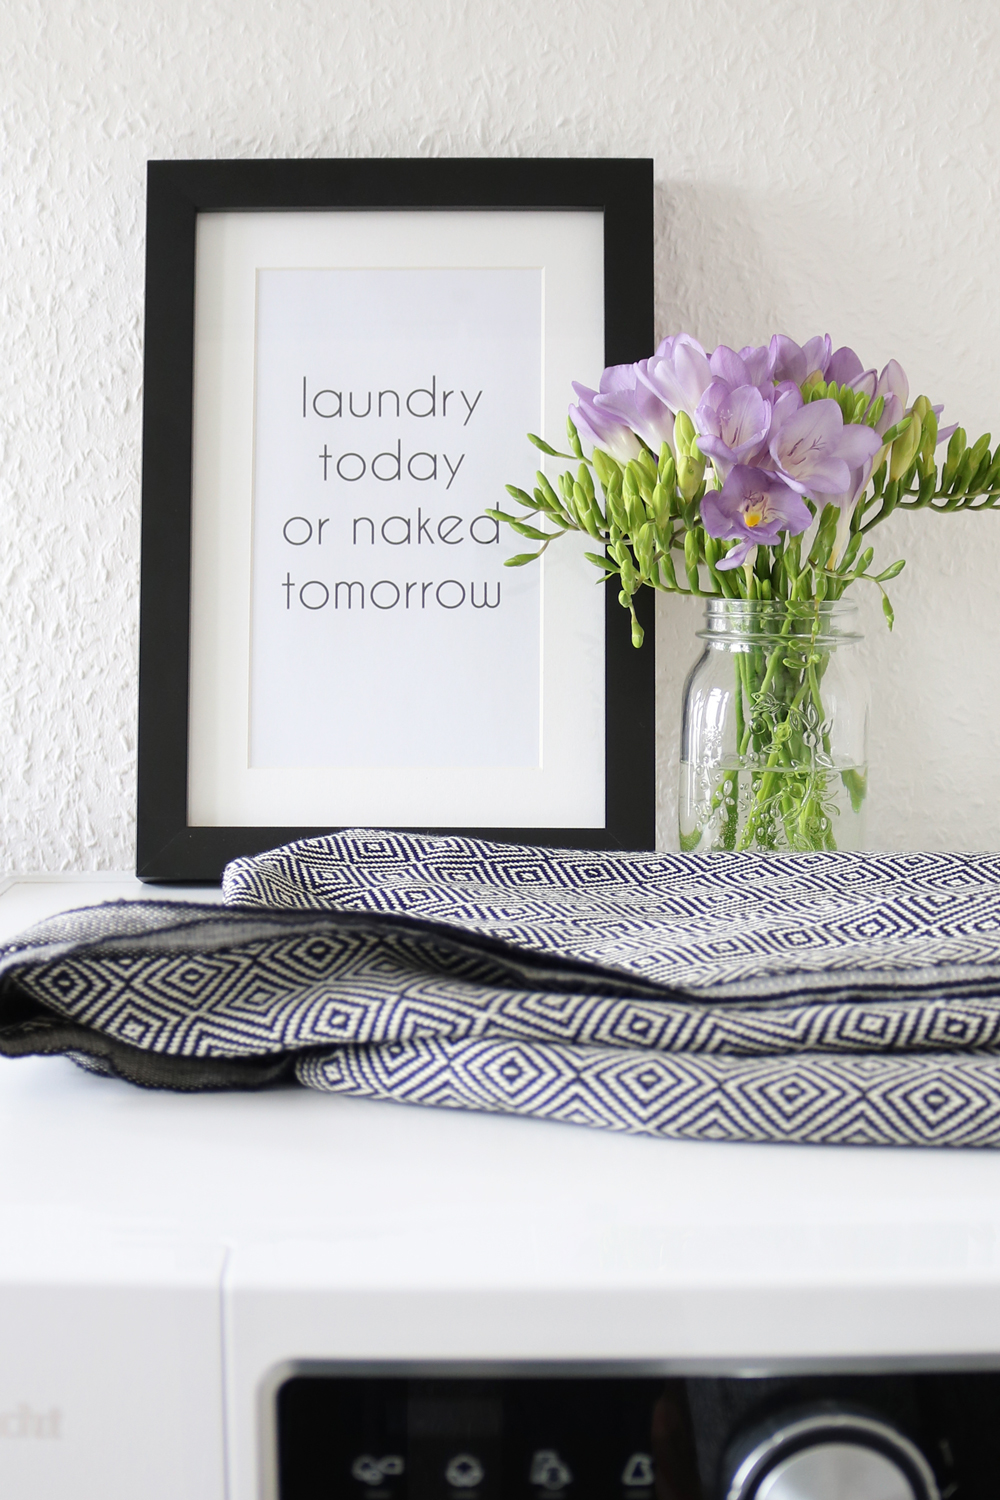 laundry-today-or-naked-tomorrow-printable-4